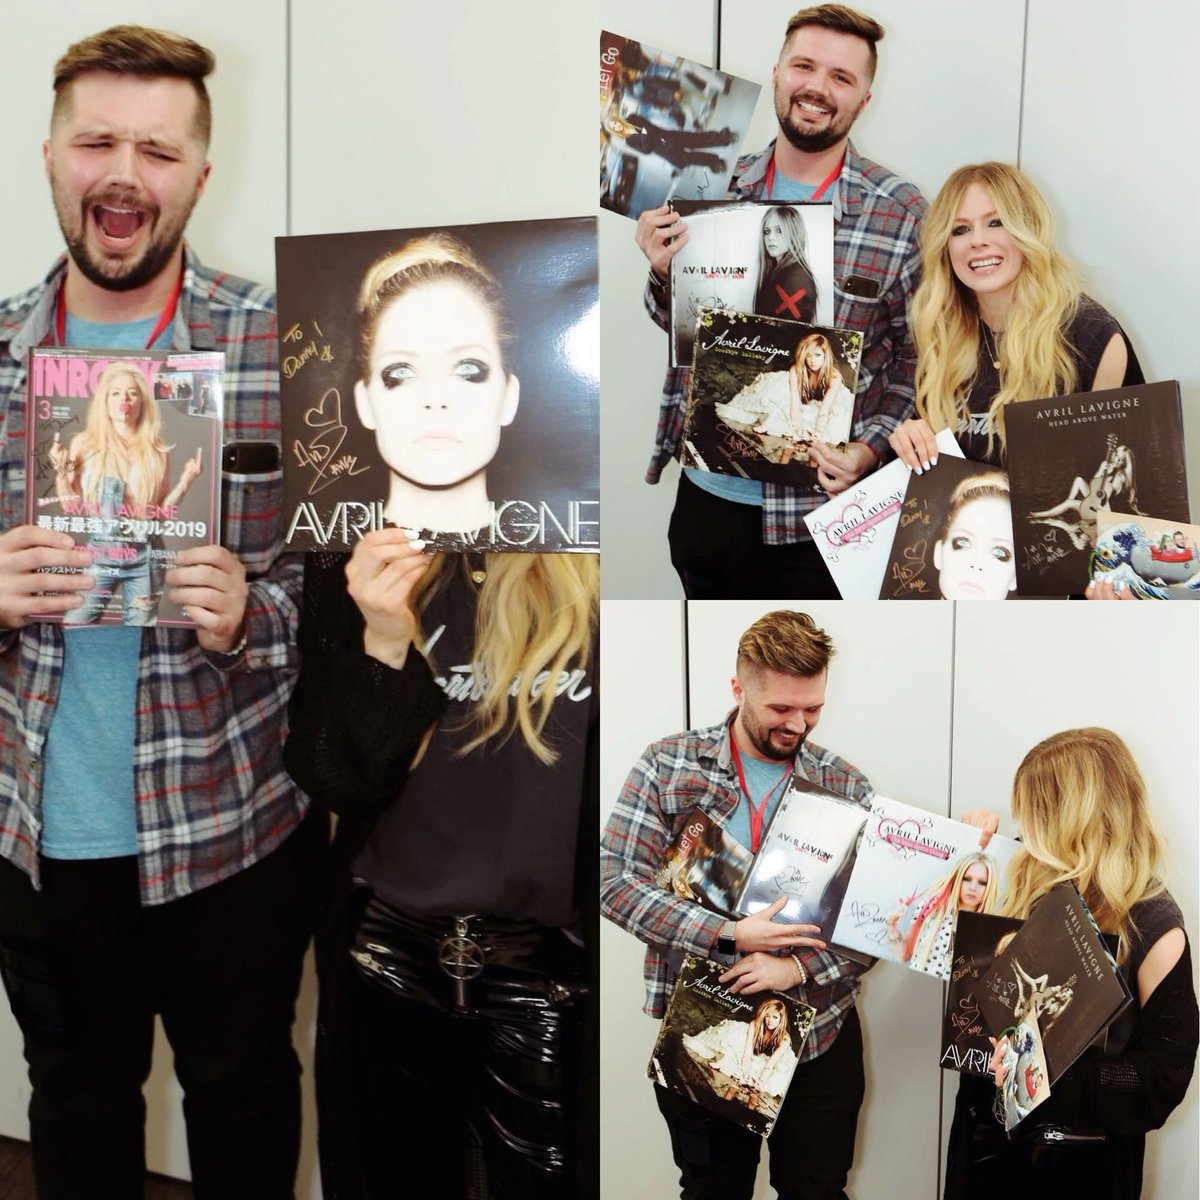 Had an amazing time hanging out and being silly in Japan with my new best friend @avrillavigne hiiiiiiiiii 😂💚🌸🇯🇵 Thanks for the 📸's Dipple! #HeadAboveWater #TheAvrilLavigneFoundation